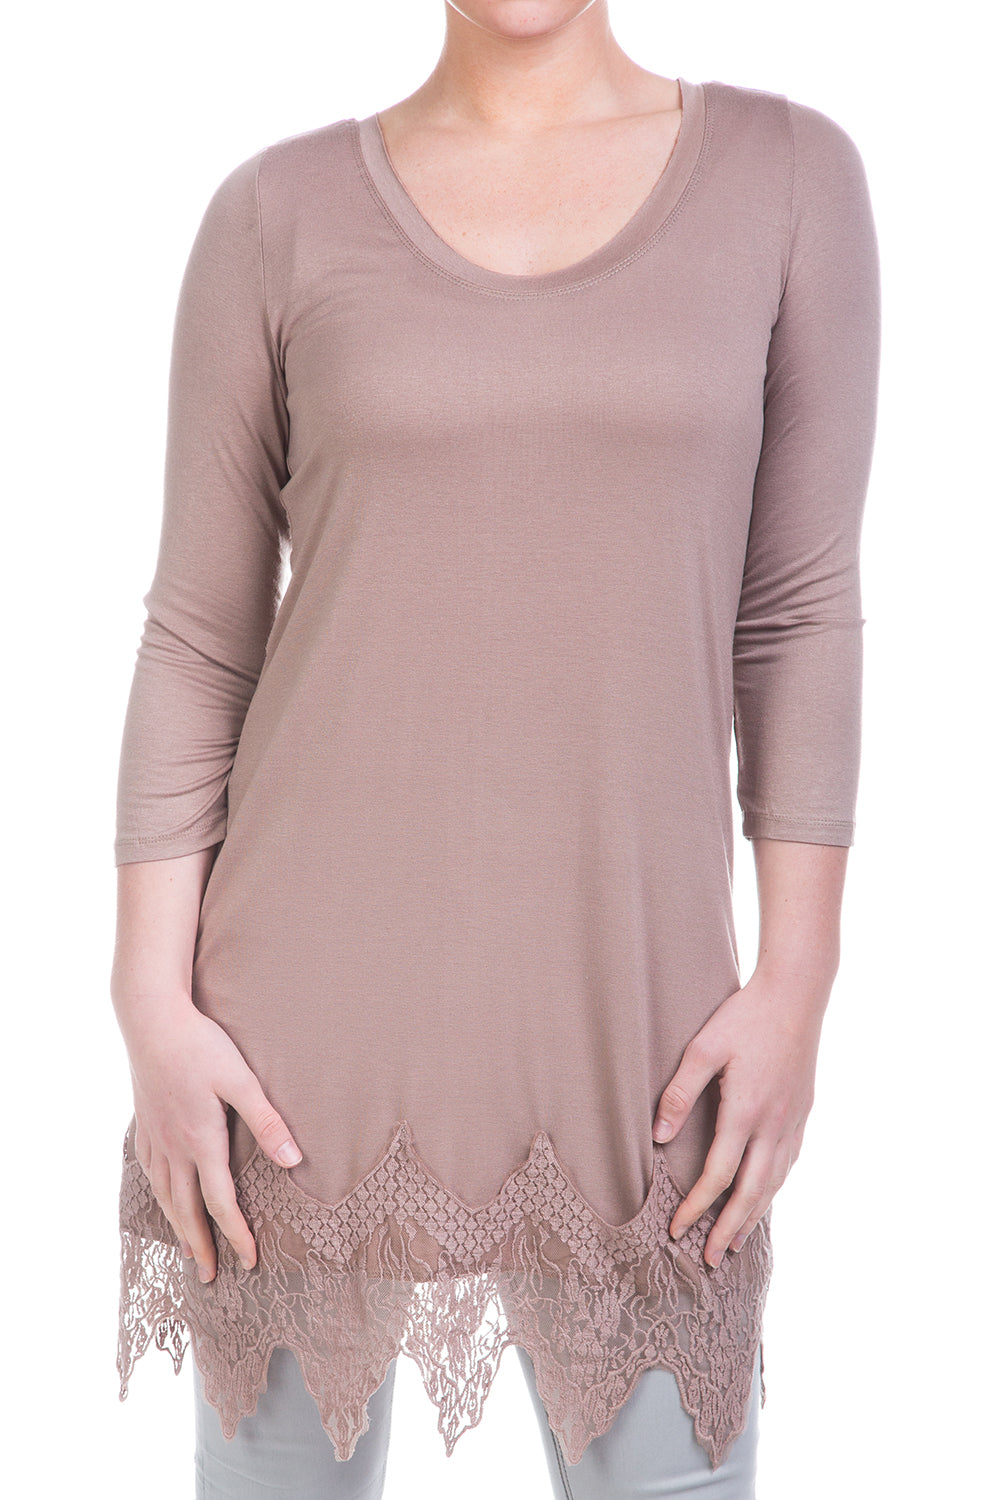 Type 2 L.A. Lady Top in Taupe